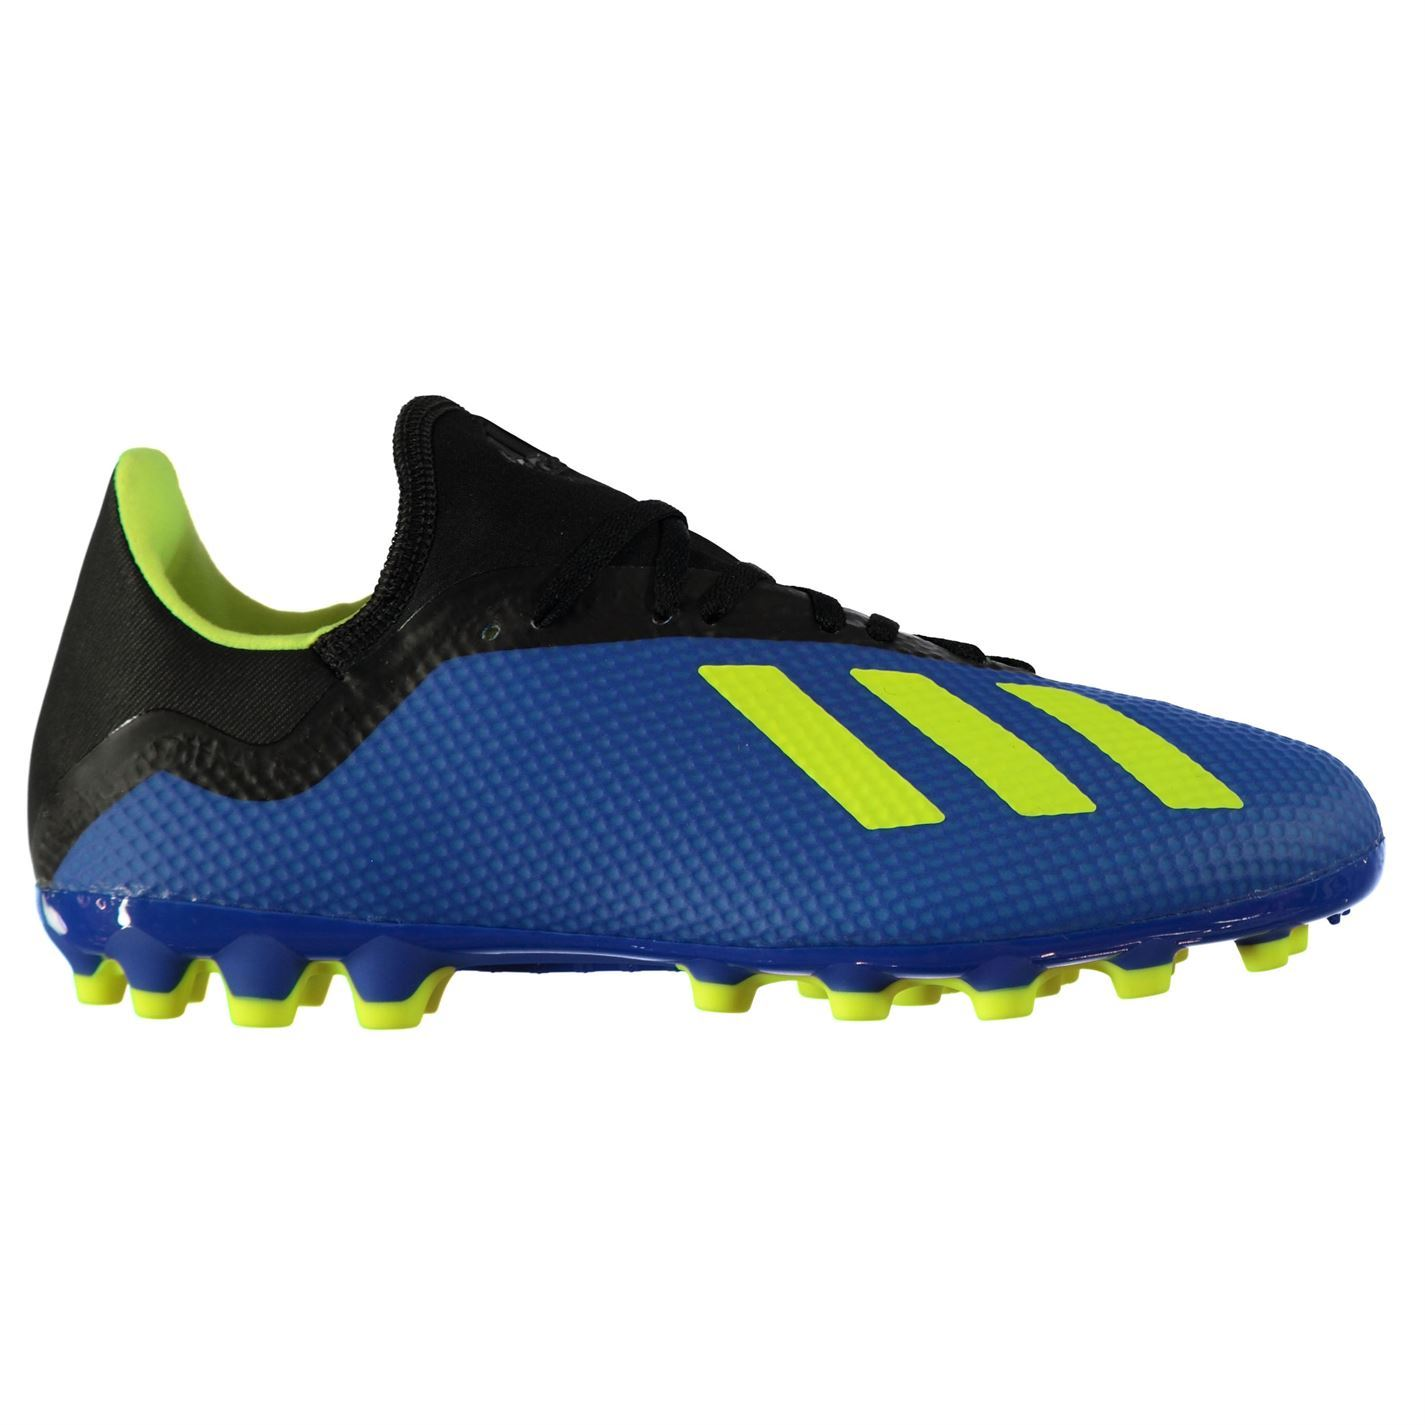 67808eeac6bf ... adidas X 18.3 Artificial Ground Football Boots Mens Blue Soccer Shoes  Cleats ...